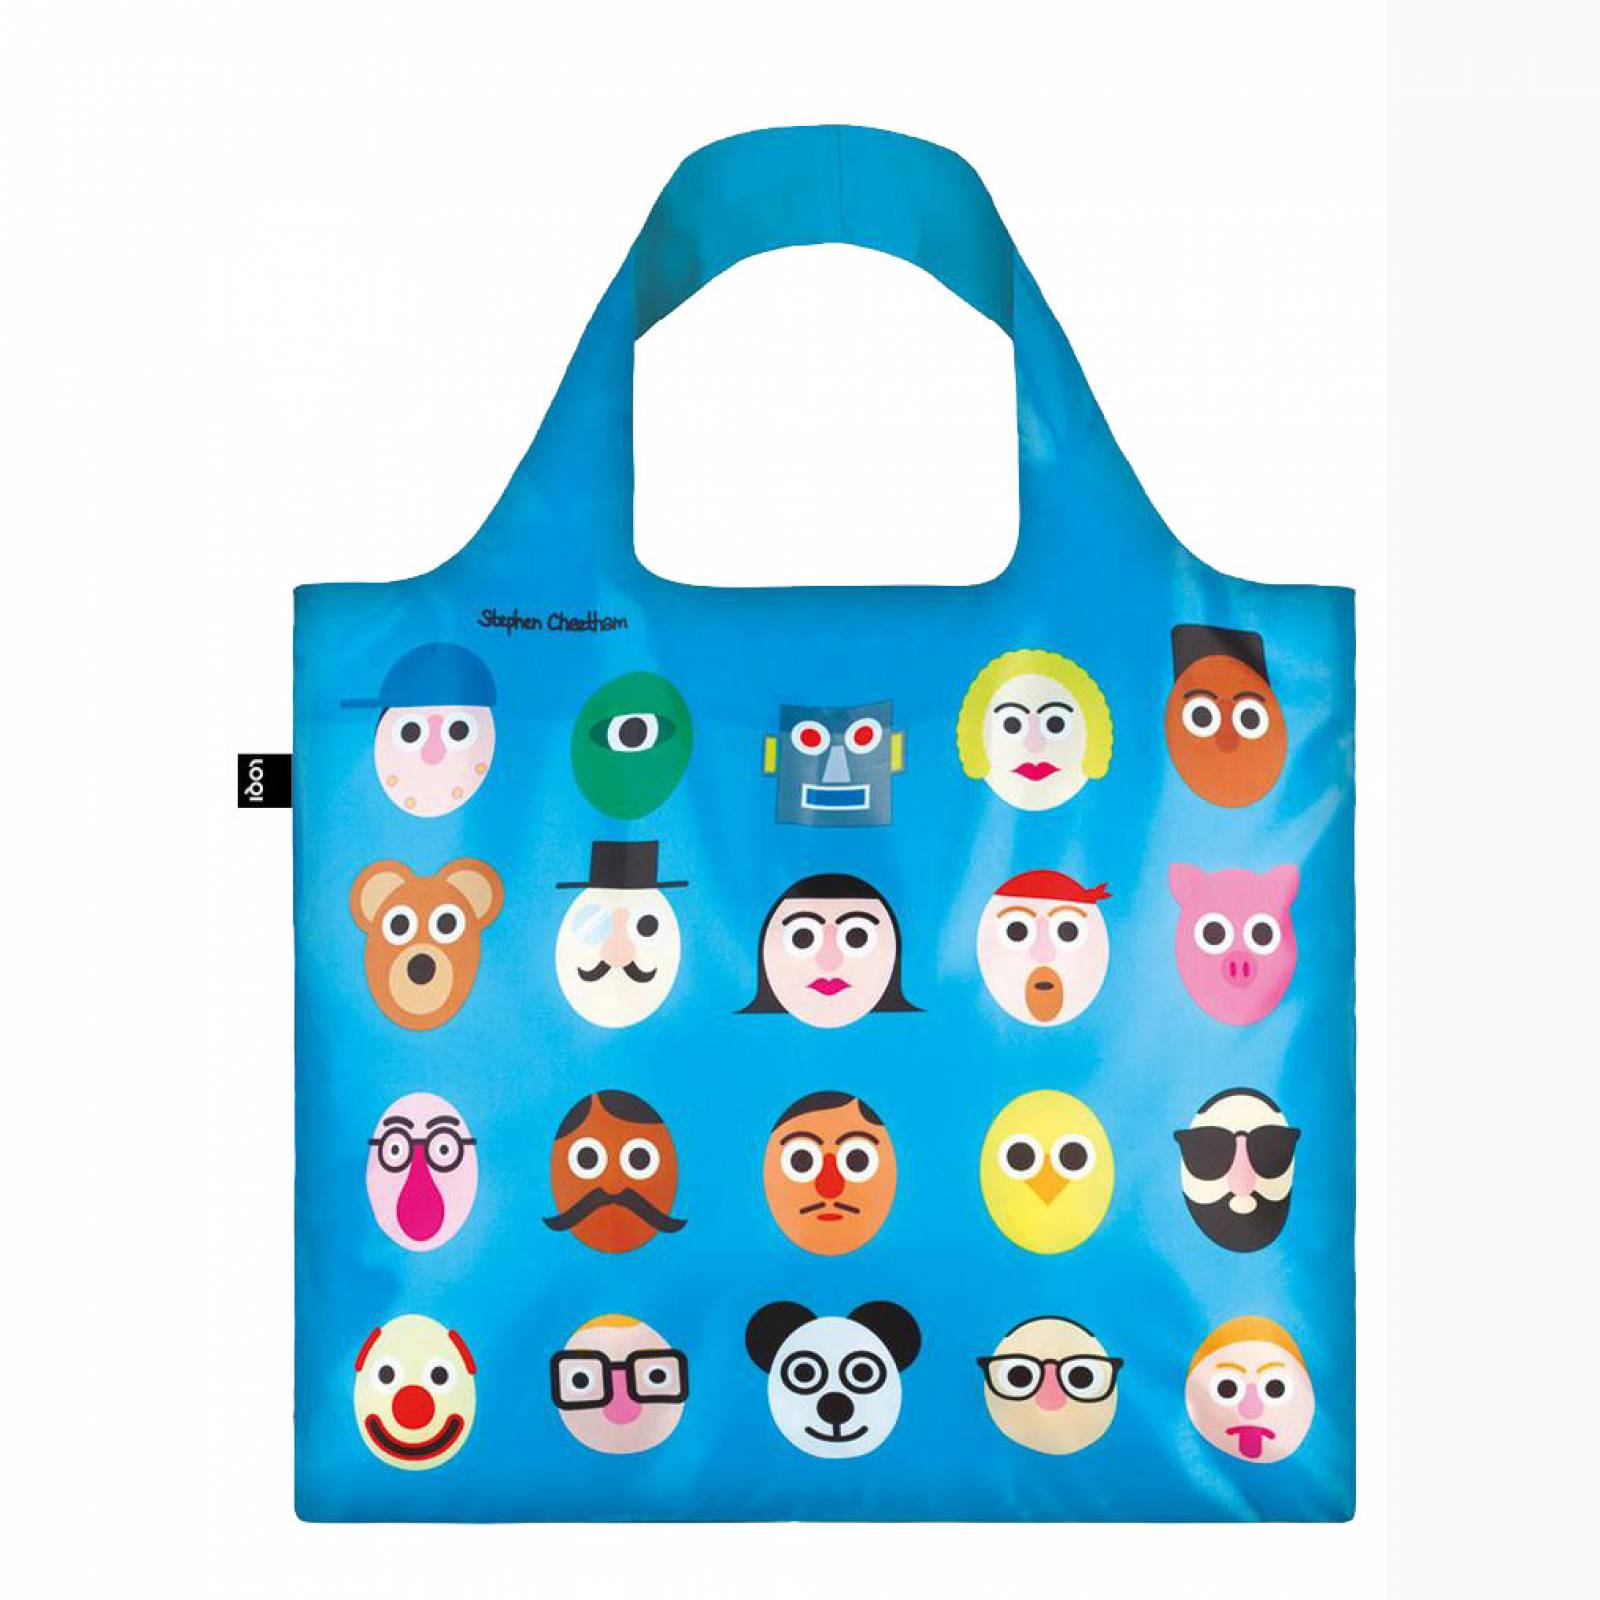 Faces - Reusable Tote Bag With Pouch